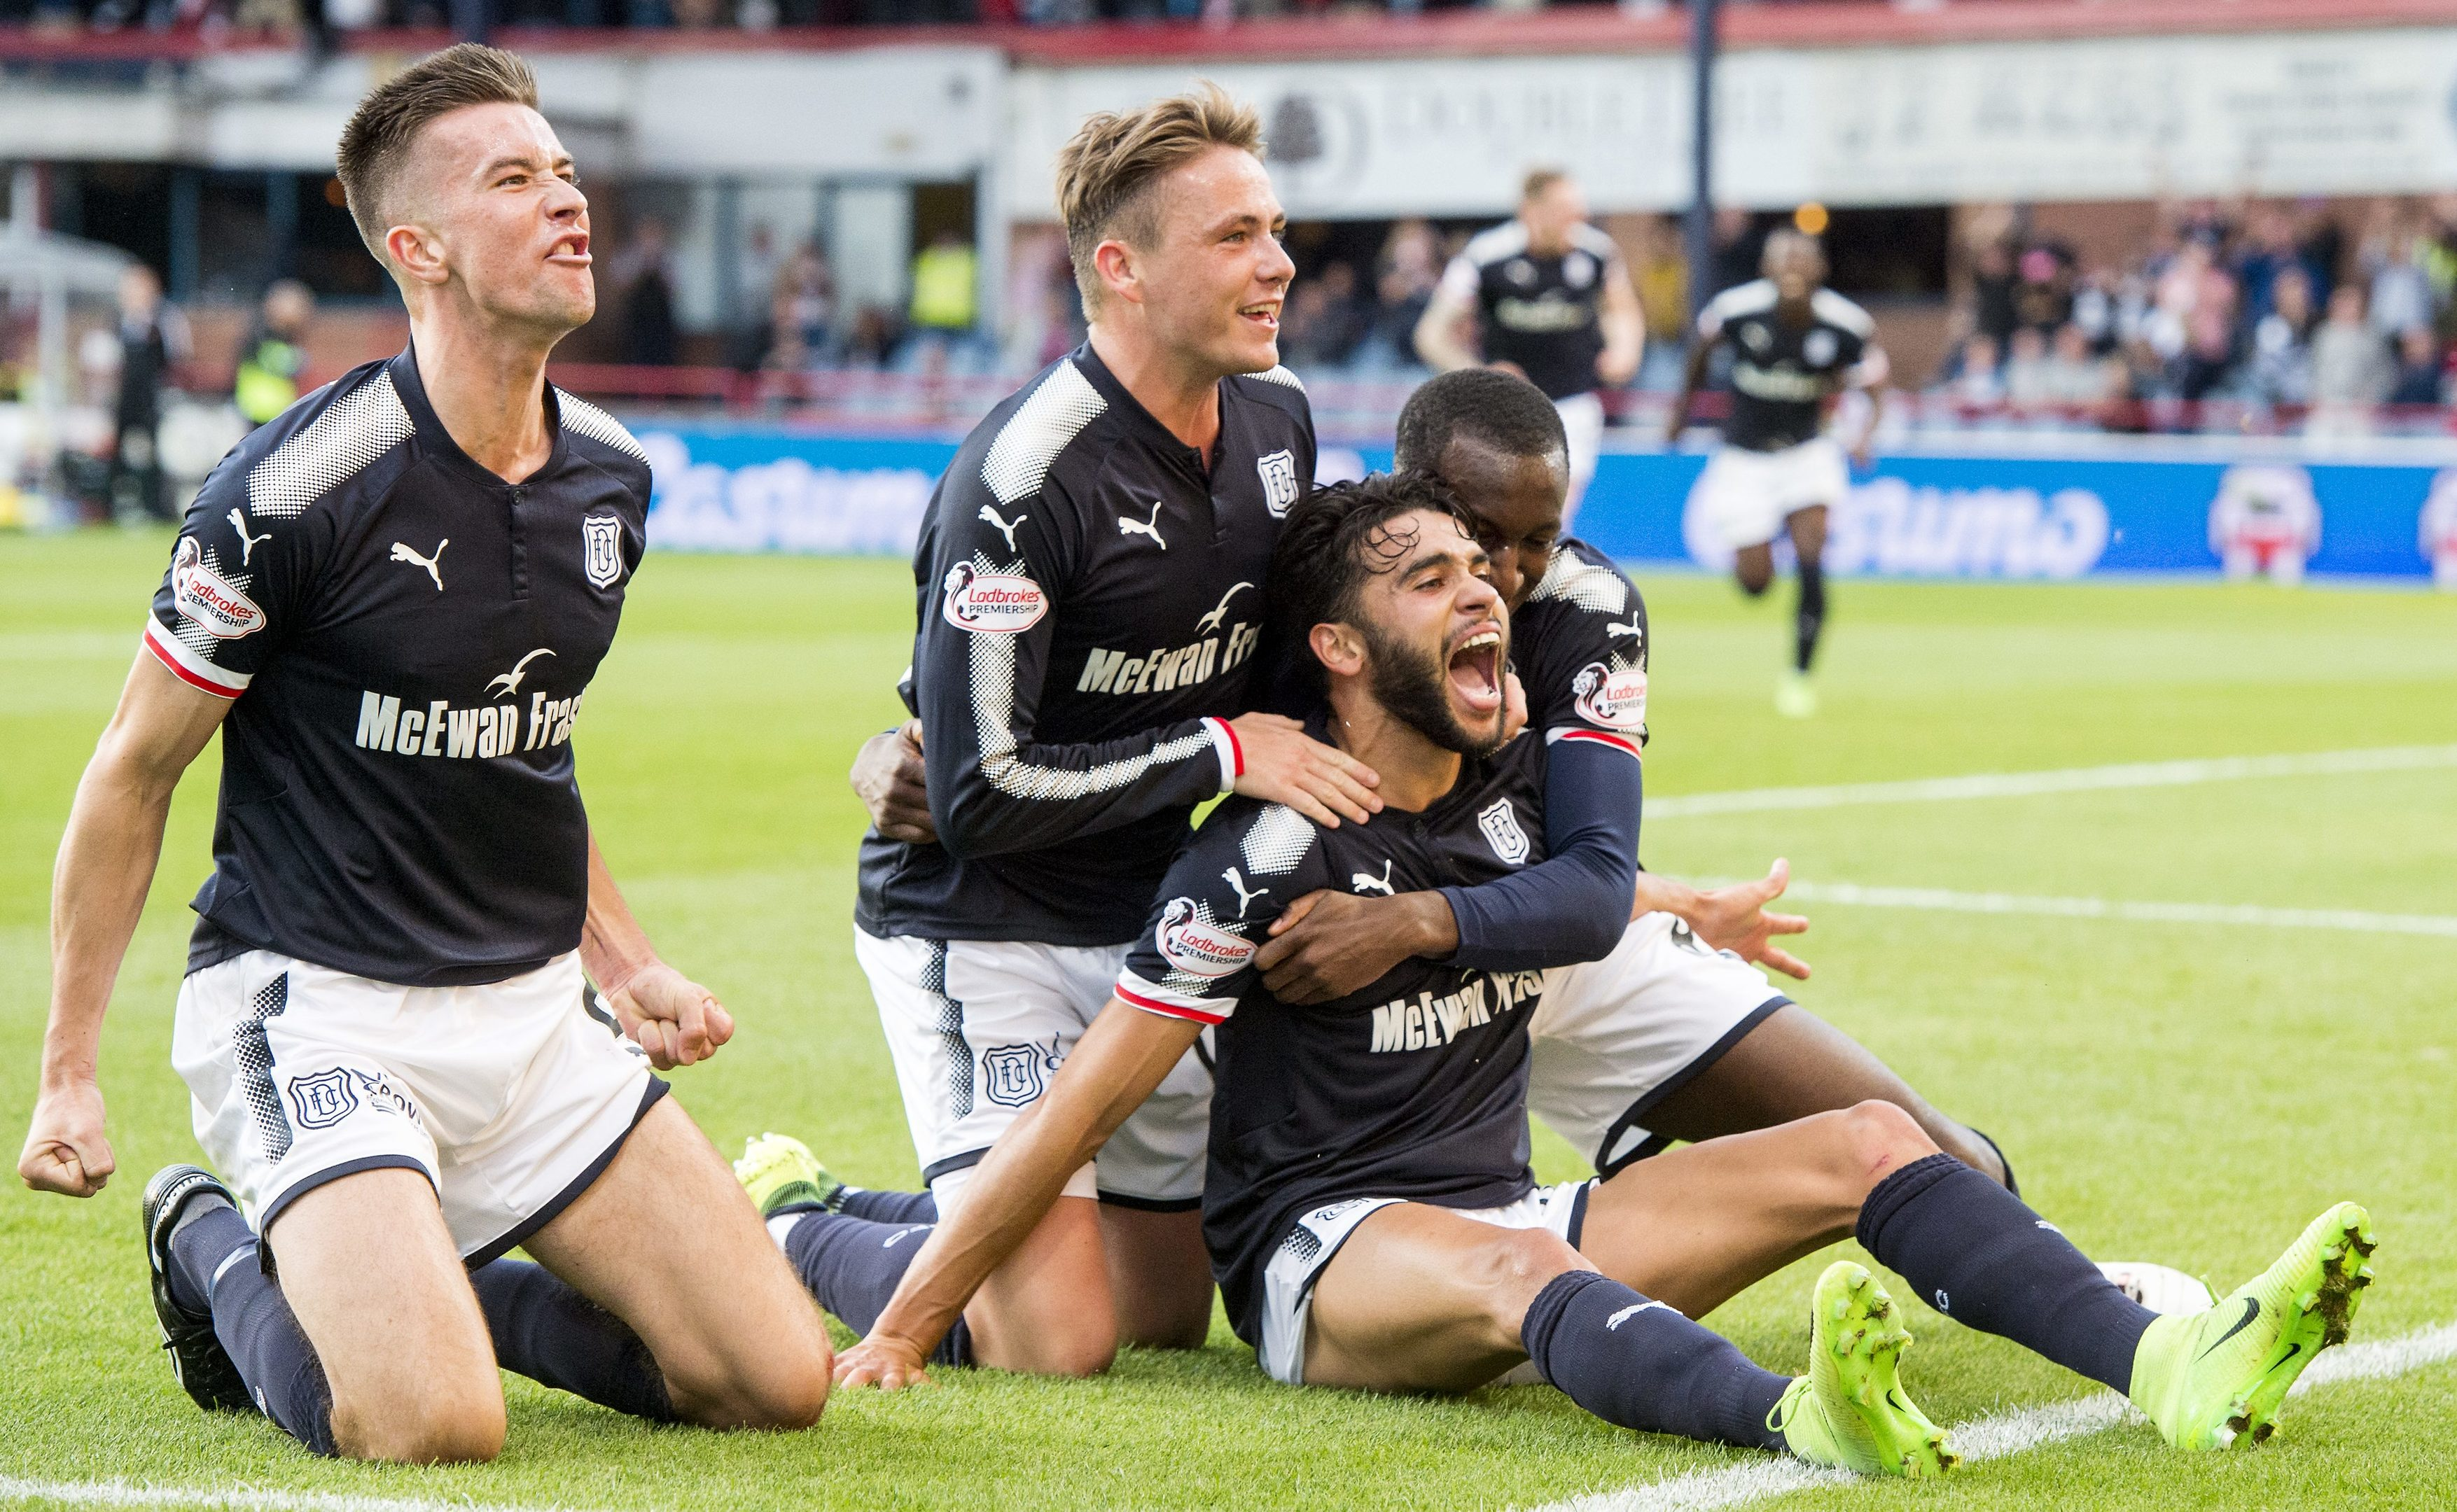 The Dundee players celebrate the opening goal.